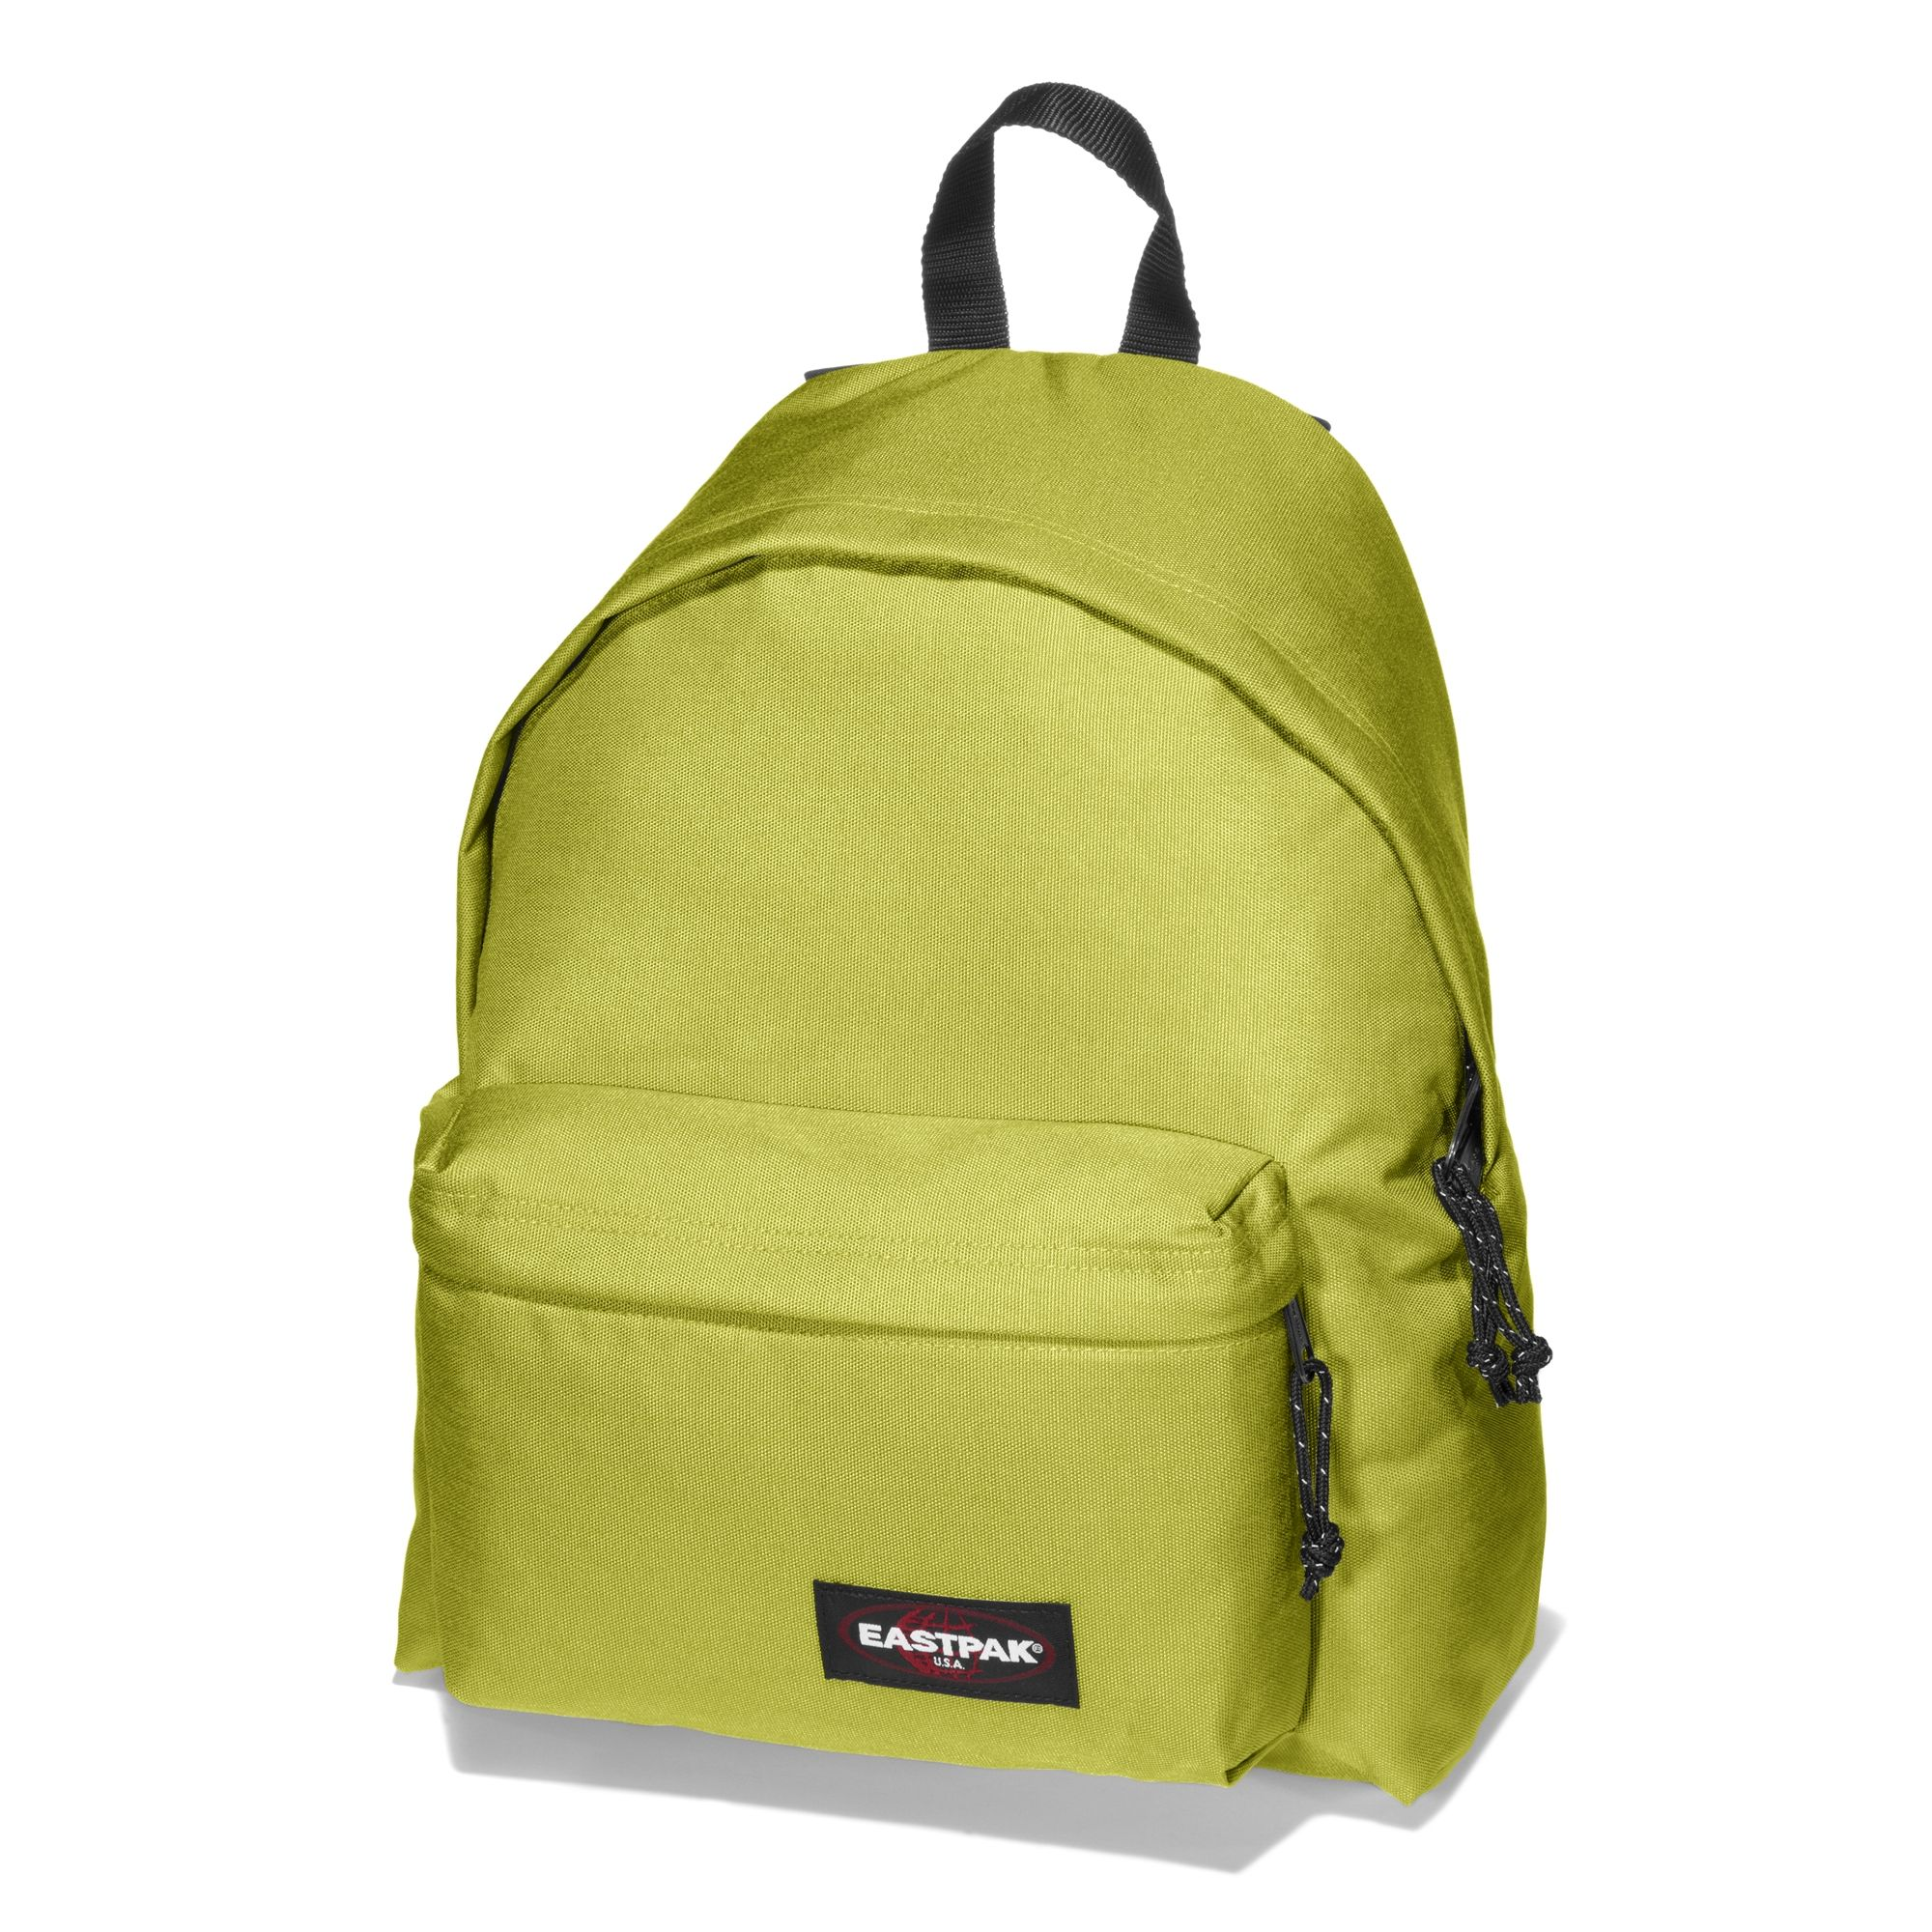 58d7f5fa3ab873 Pin by LYCSHOP.GR on Padded Pak'R! The Original! #Eastpak ...